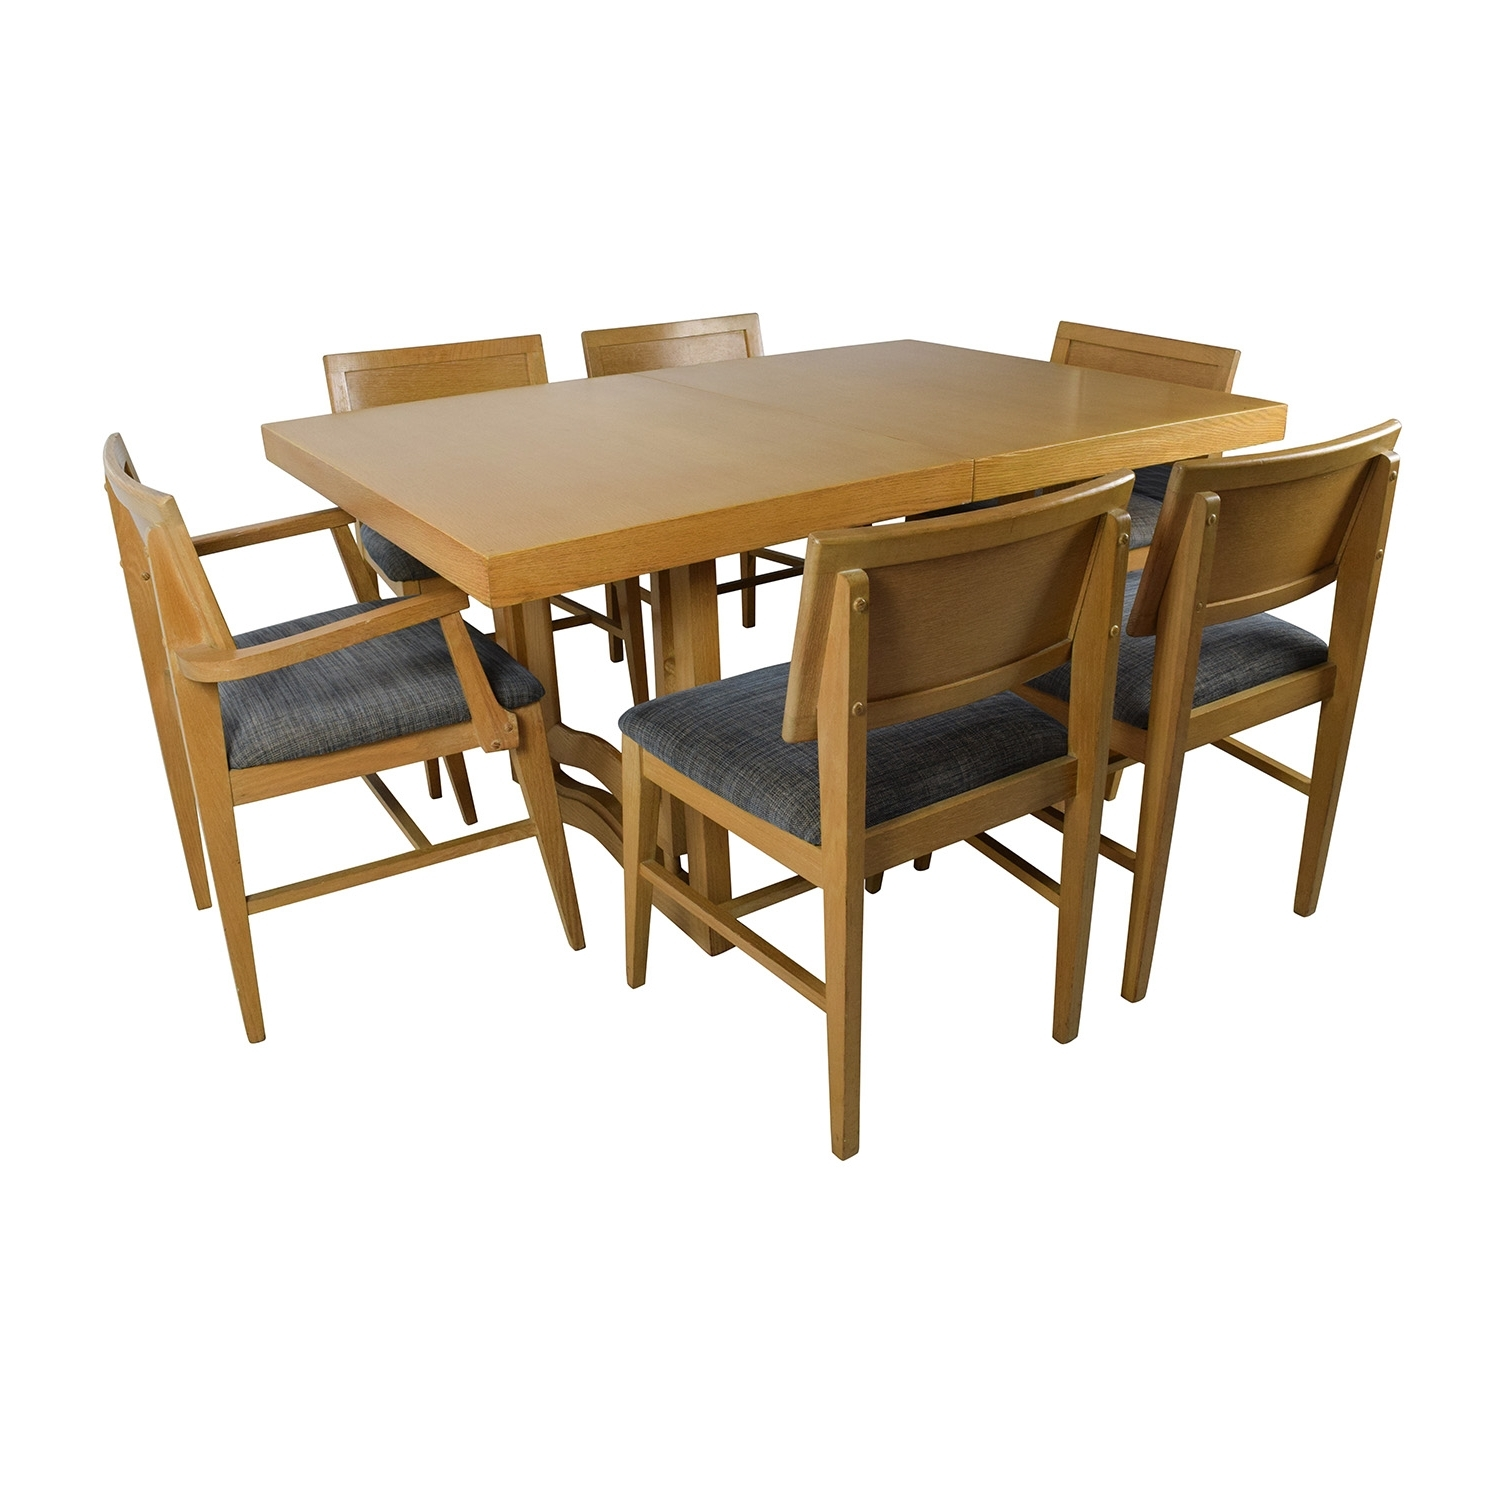 [%59% Off – Mid Century Extension Dining Table And Six Chairs / Tables Throughout Well Known Dining Tables For Six Dining Tables For Six Intended For Widely Used 59% Off – Mid Century Extension Dining Table And Six Chairs / Tables Fashionable Dining Tables For Six Pertaining To 59% Off – Mid Century Extension Dining Table And Six Chairs / Tables Preferred 59% Off – Mid Century Extension Dining Table And Six Chairs / Tables Pertaining To Dining Tables For Six%] (View 22 of 25)